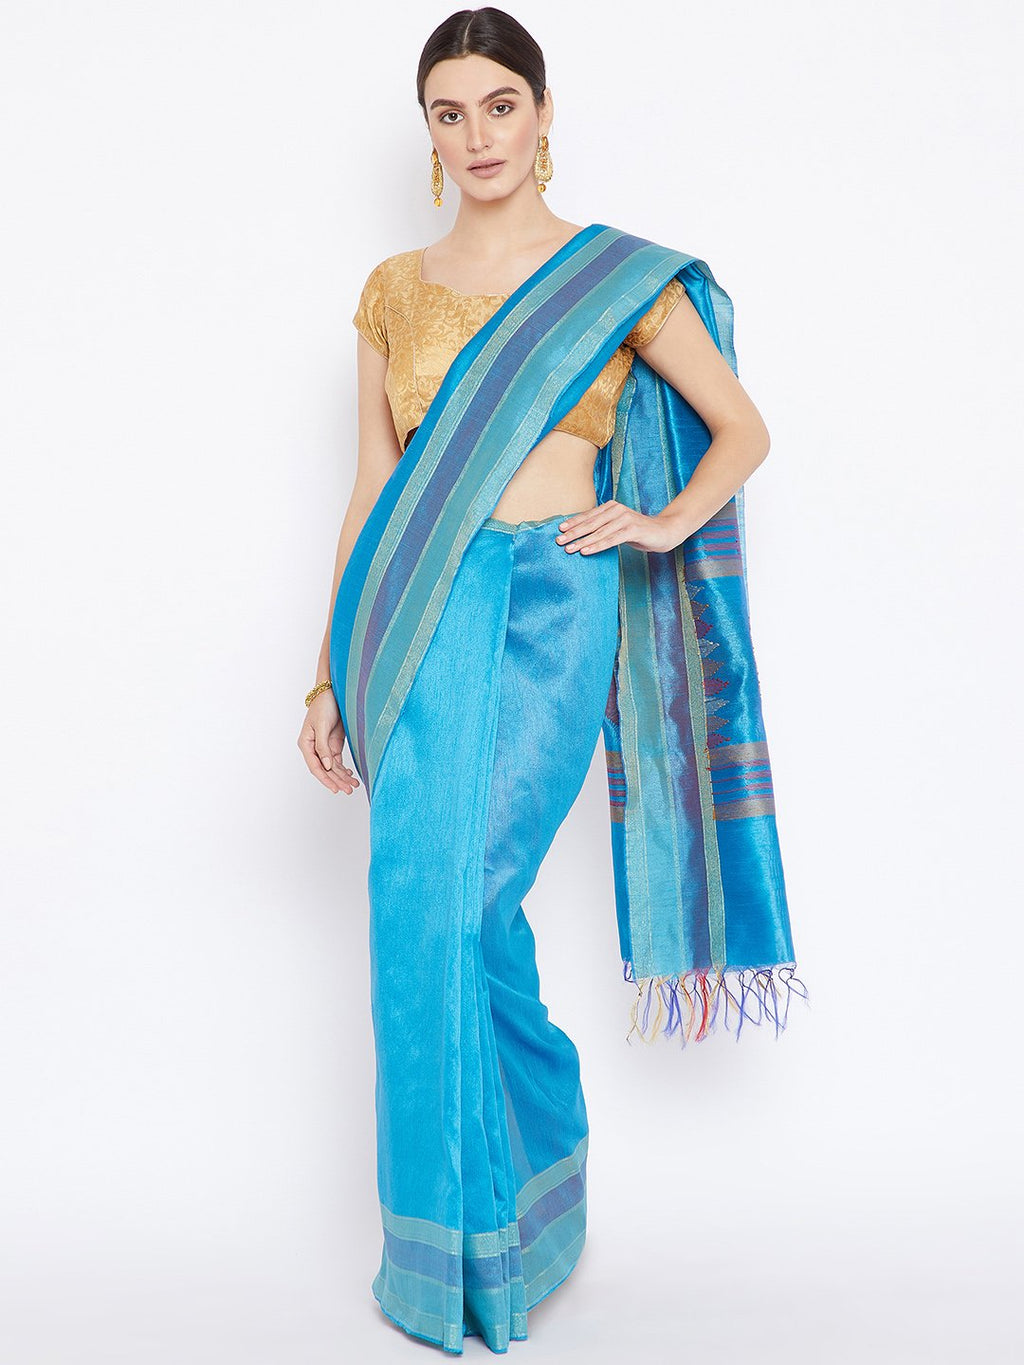 Blue Tussar Woven Design Handloom Saree-Saree-Kalakari India-PRTUSA0002-Ahimsa Silk, Chattisgarh Kosa, Cruelty Free, Geographical Indication, Hand Woven, Sarees, Silk, Sustainable Fabrics, Traditional Weave, Tussar-[Linen,Ethnic,wear,Fashionista,Handloom,Handicraft,Indigo,blockprint,block,print,Cotton,Chanderi,Blue, latest,classy,party,bollywood,trendy,summer,style,traditional,formal,elegant,unique,style,hand,block,print, dabu,booti,gift,present,glamorous,affordable,collectible,Sari,Saree,printe